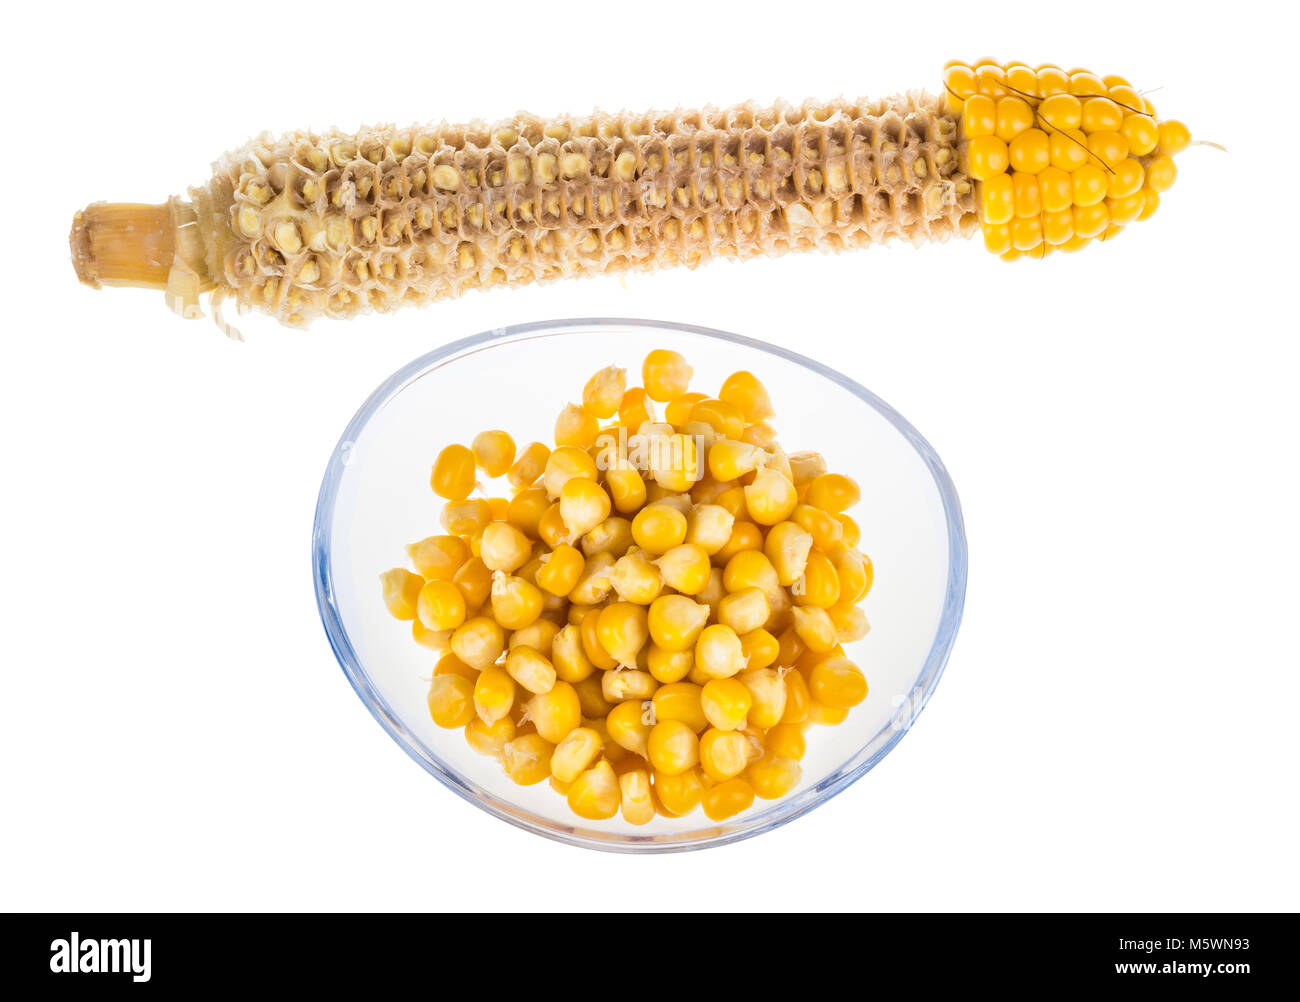 Yellow boiled corn and empty cob. Partly eaten corncob and pile of maize grains in glass bowl isolated on white - Stock Image